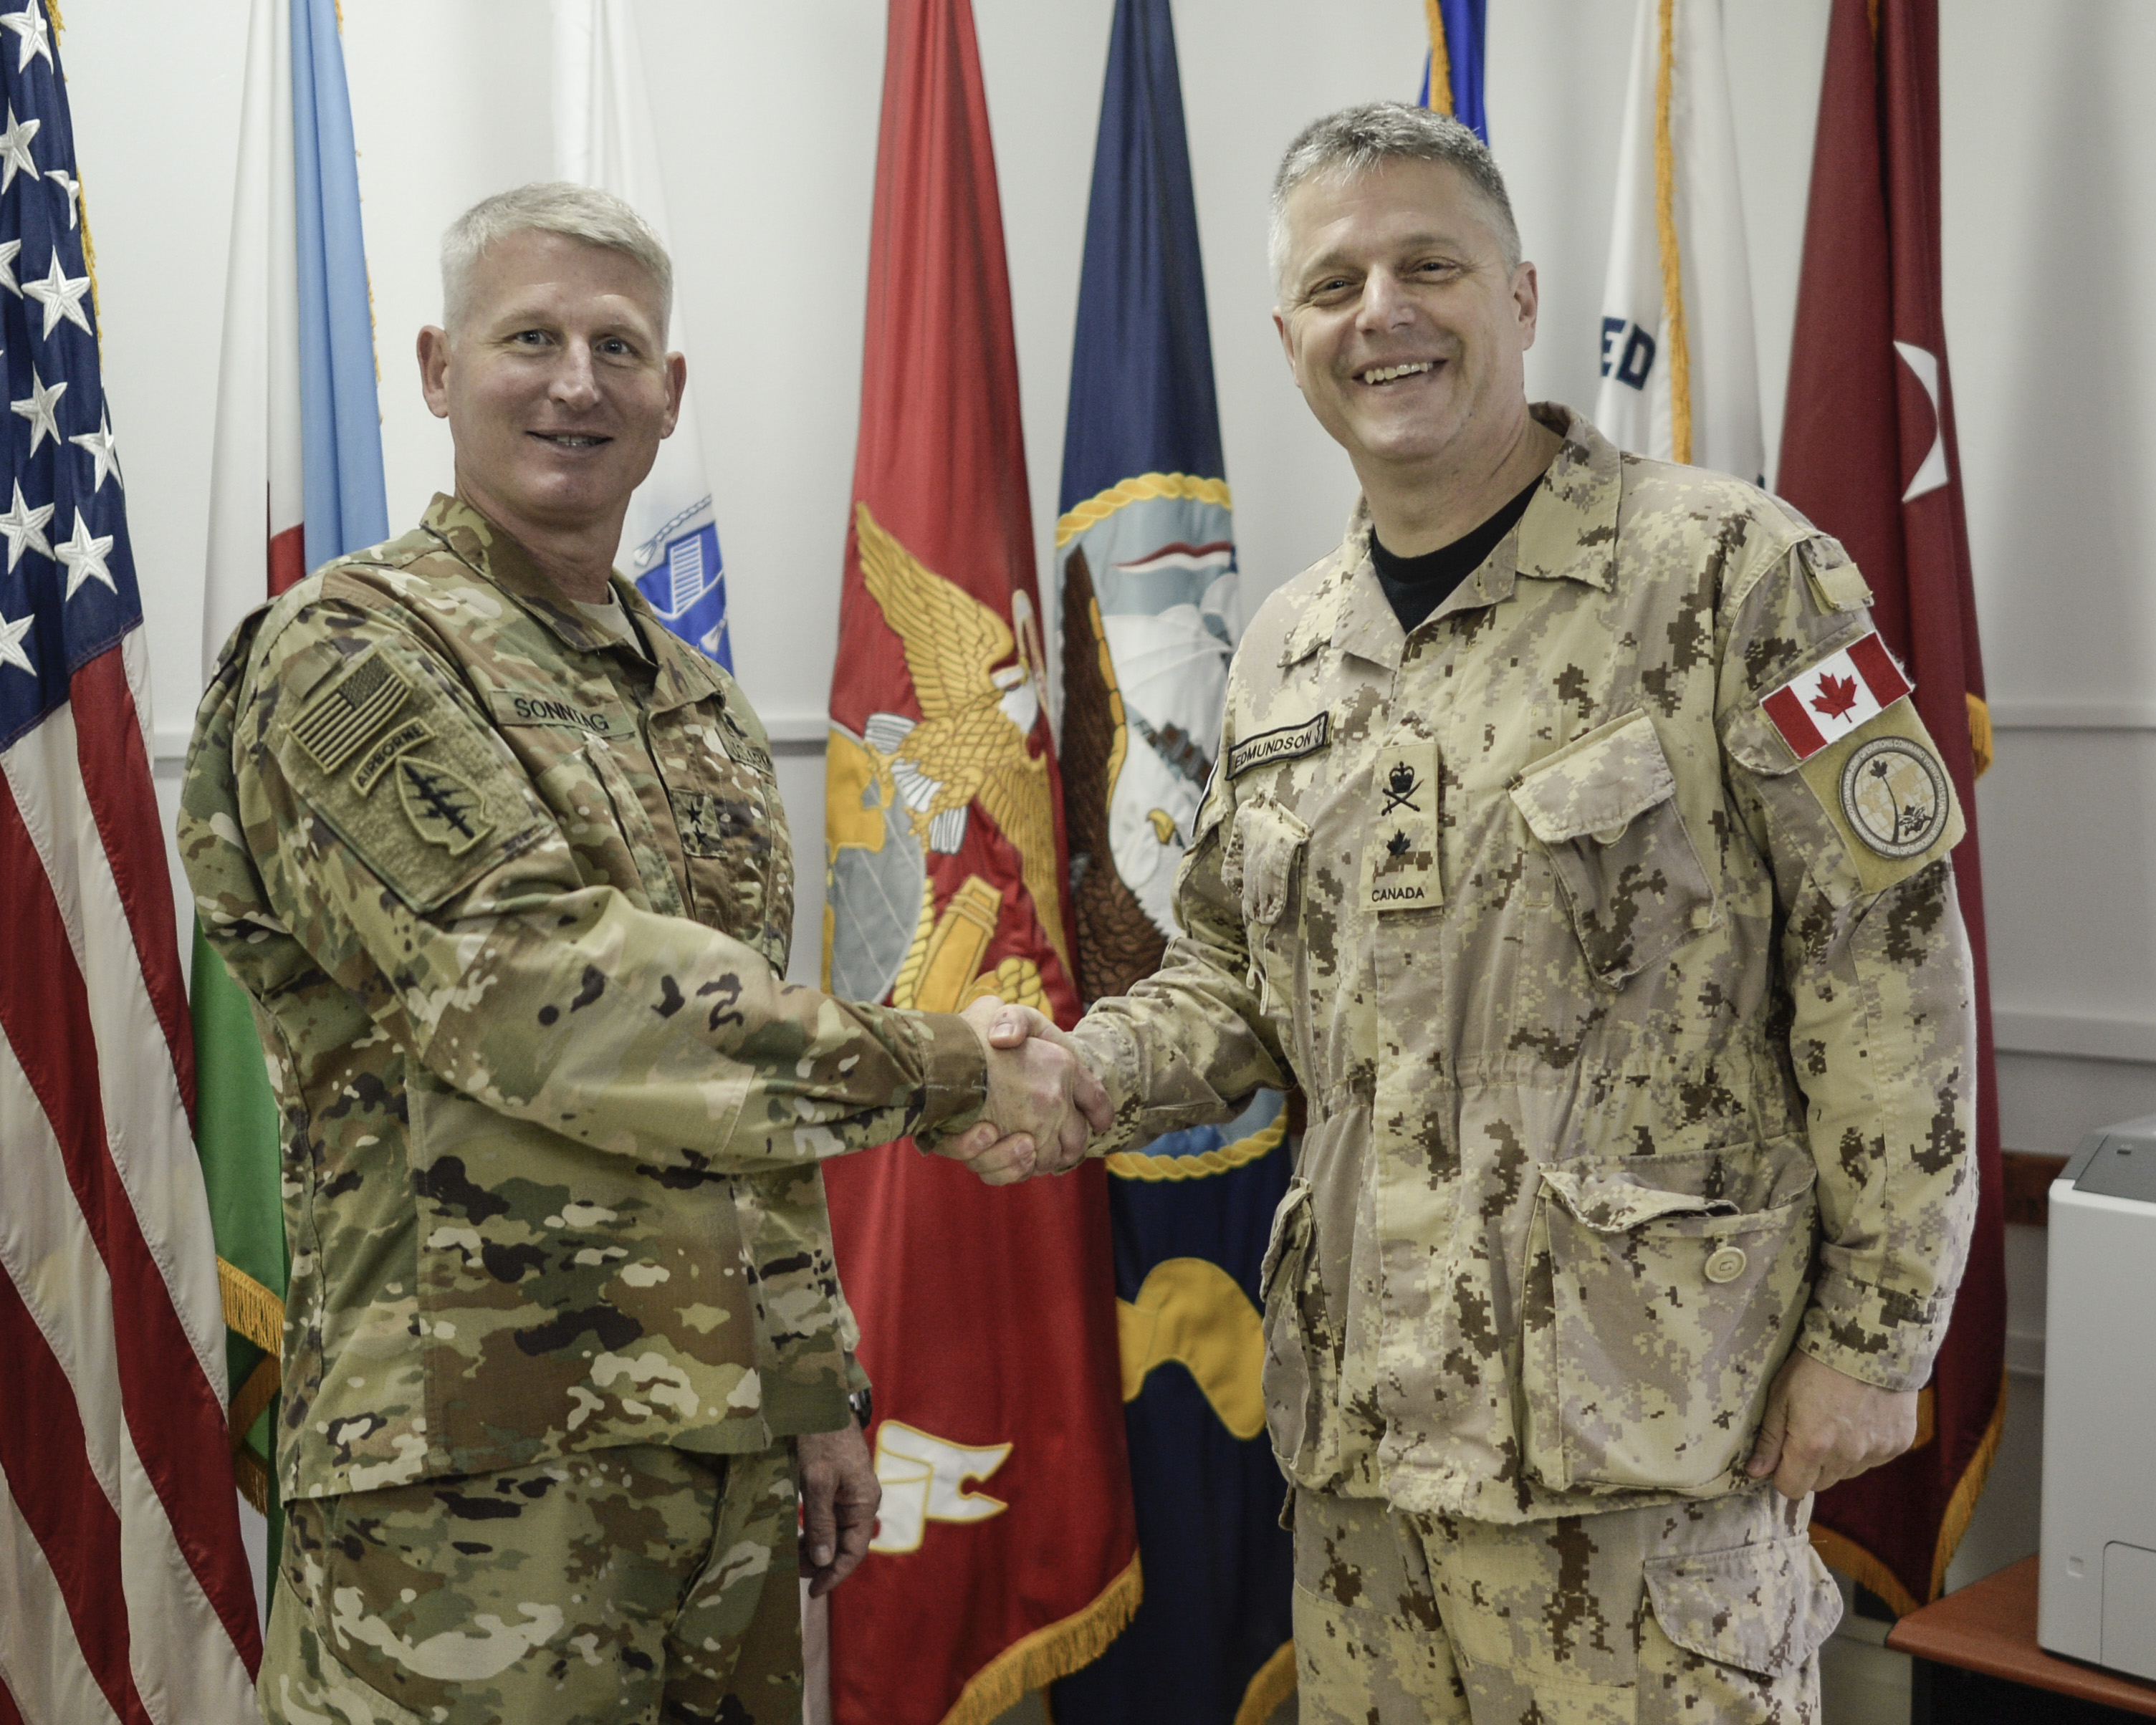 Royal Canadian Navy Commodore Haydn Edmundson, P-Commander, meets with U.S. Army Major Gen. Kurt Sonntag, Joint Task Force-Horn of Africa commander, while visiting Camp Lemonnier Nov. 28, 2016.  Commodore Edmundson will take command of Combined Task Force 150 (CTF-150) Dec. 16, 2016.  Re-established post 9/11, CTF-150 is a 25-nation coalition naval task force coordinated by the Combined Maritime Forces based in Manama, Bahrain. Its main functions are to monitor, inspect, board and stop suspect shipping and terrorism in the Horn of Africa.